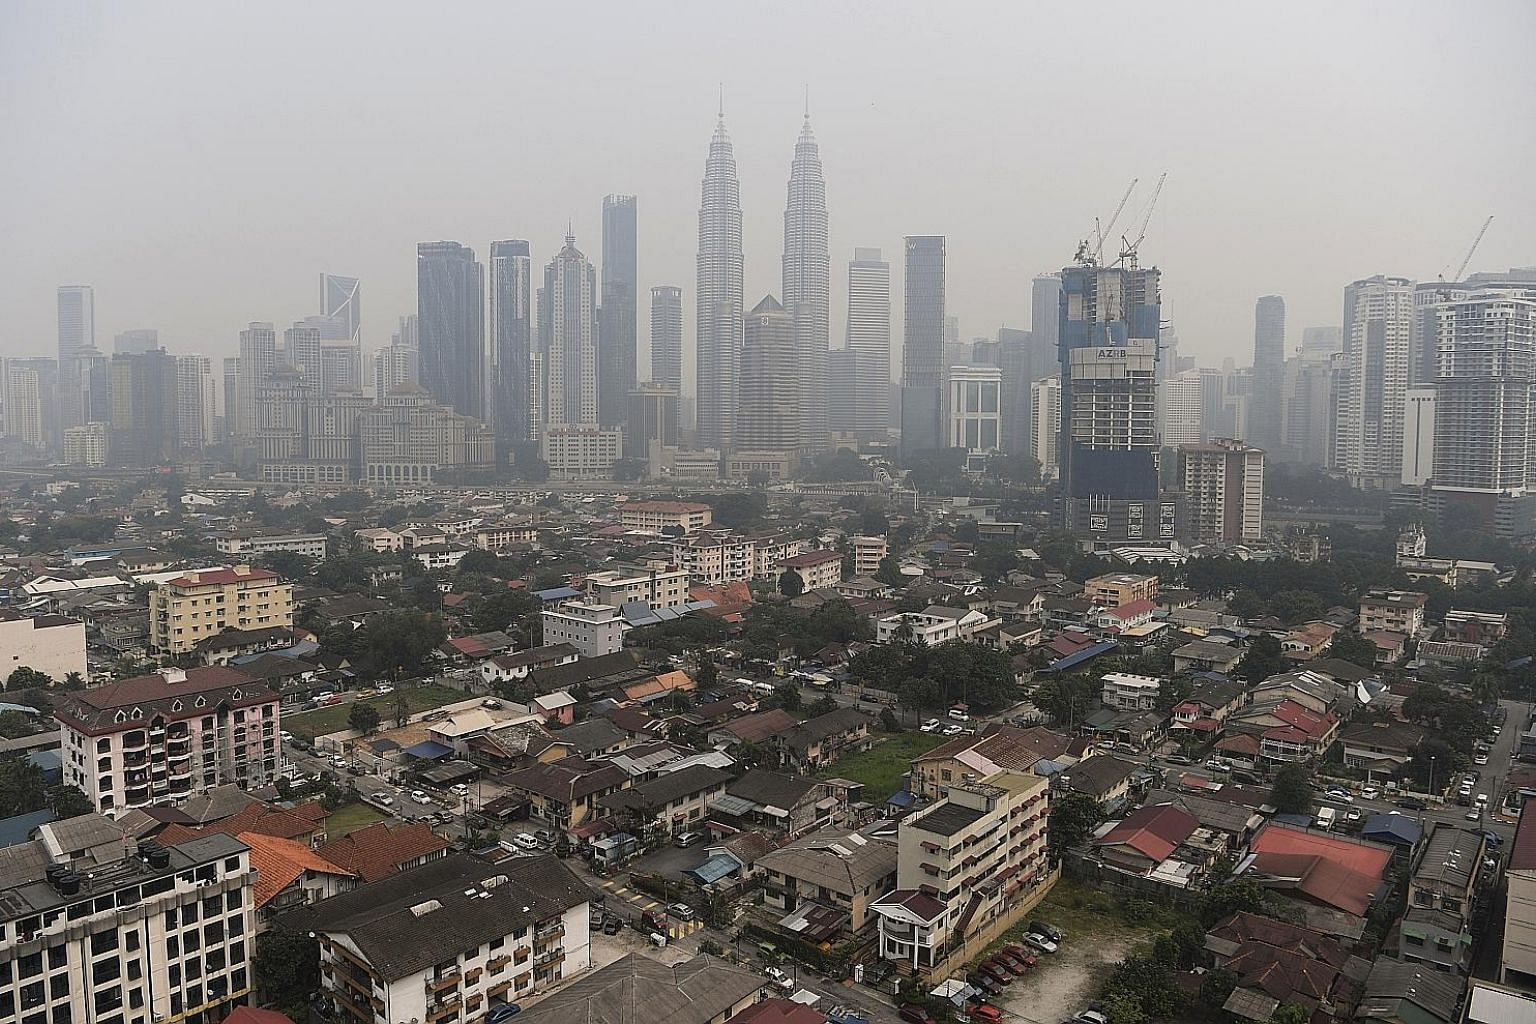 A model of the redevelopment plan for Kampung Baru with new tall towers (in dark brown). The government plans to build 45,000 residential units through the development. At present, there are between 3,500 and 4,500 residential units in the enclave, w